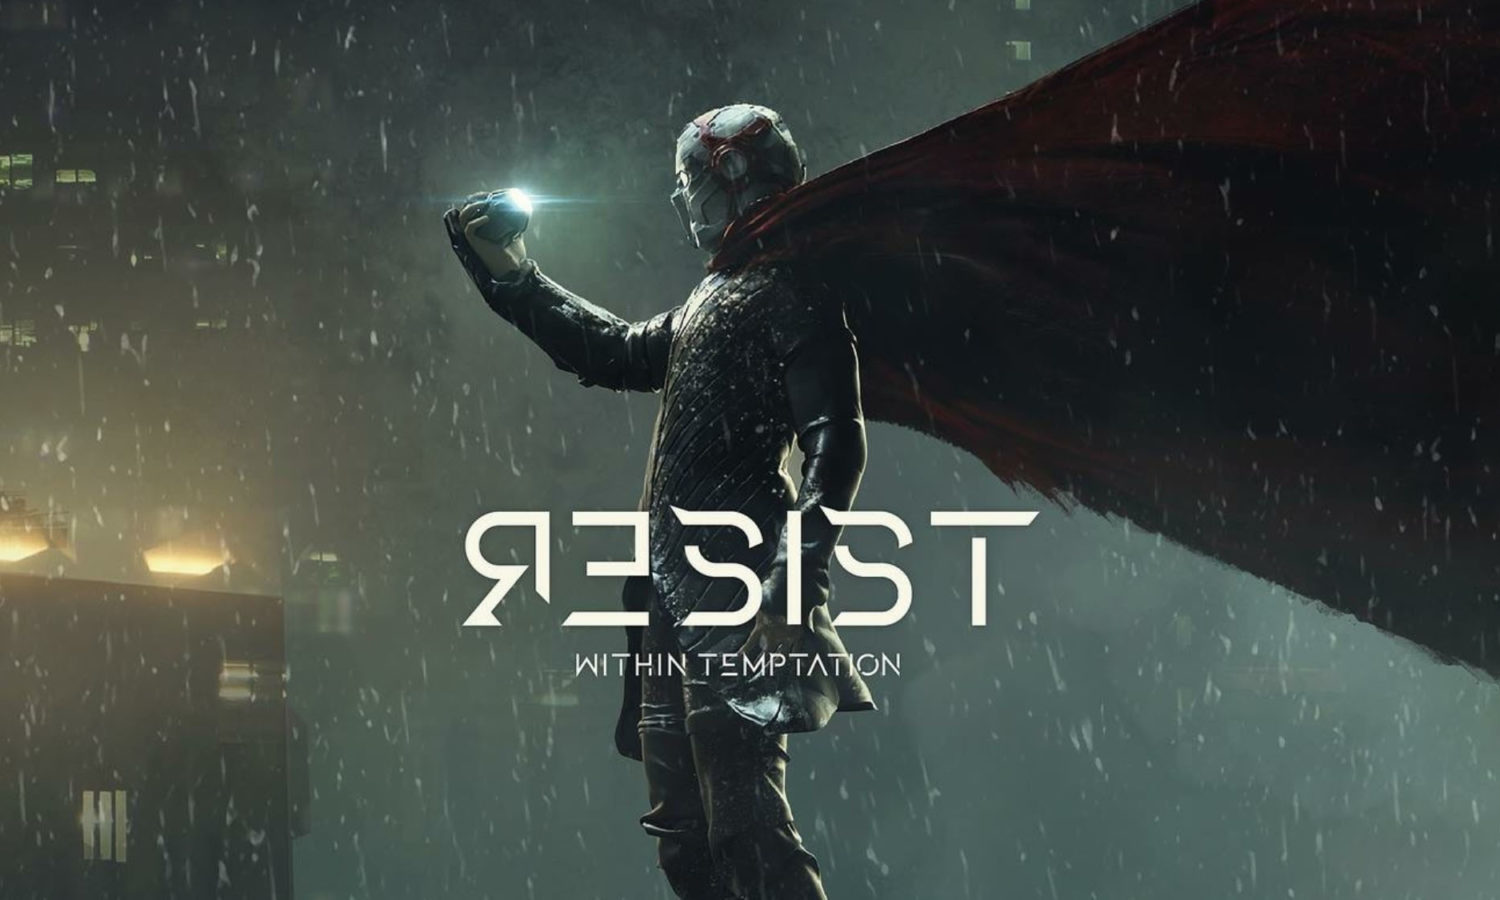 Resist album Within Temptation 2018